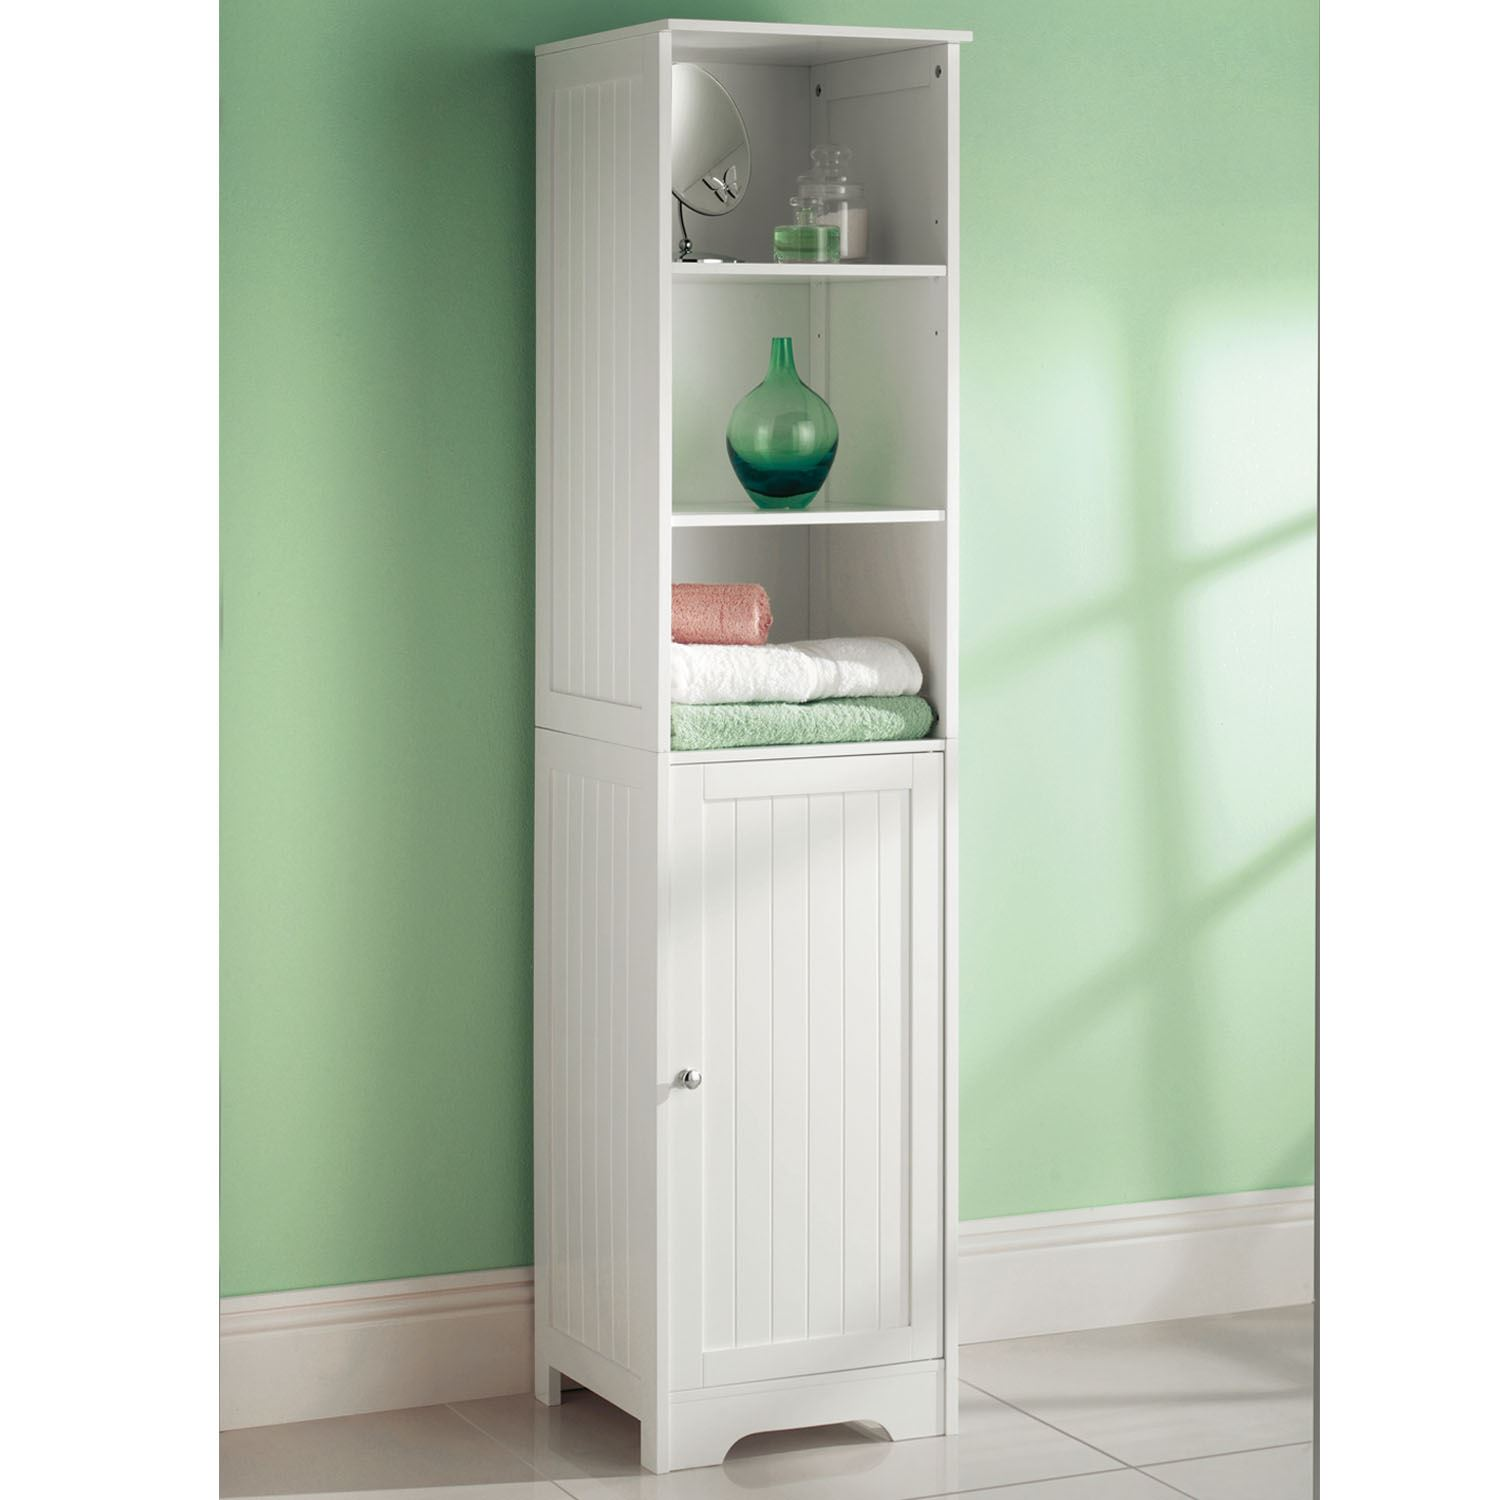 White Wooden Tall Boy Bathroom Cabinet Shelf Cupboard Storage Unit